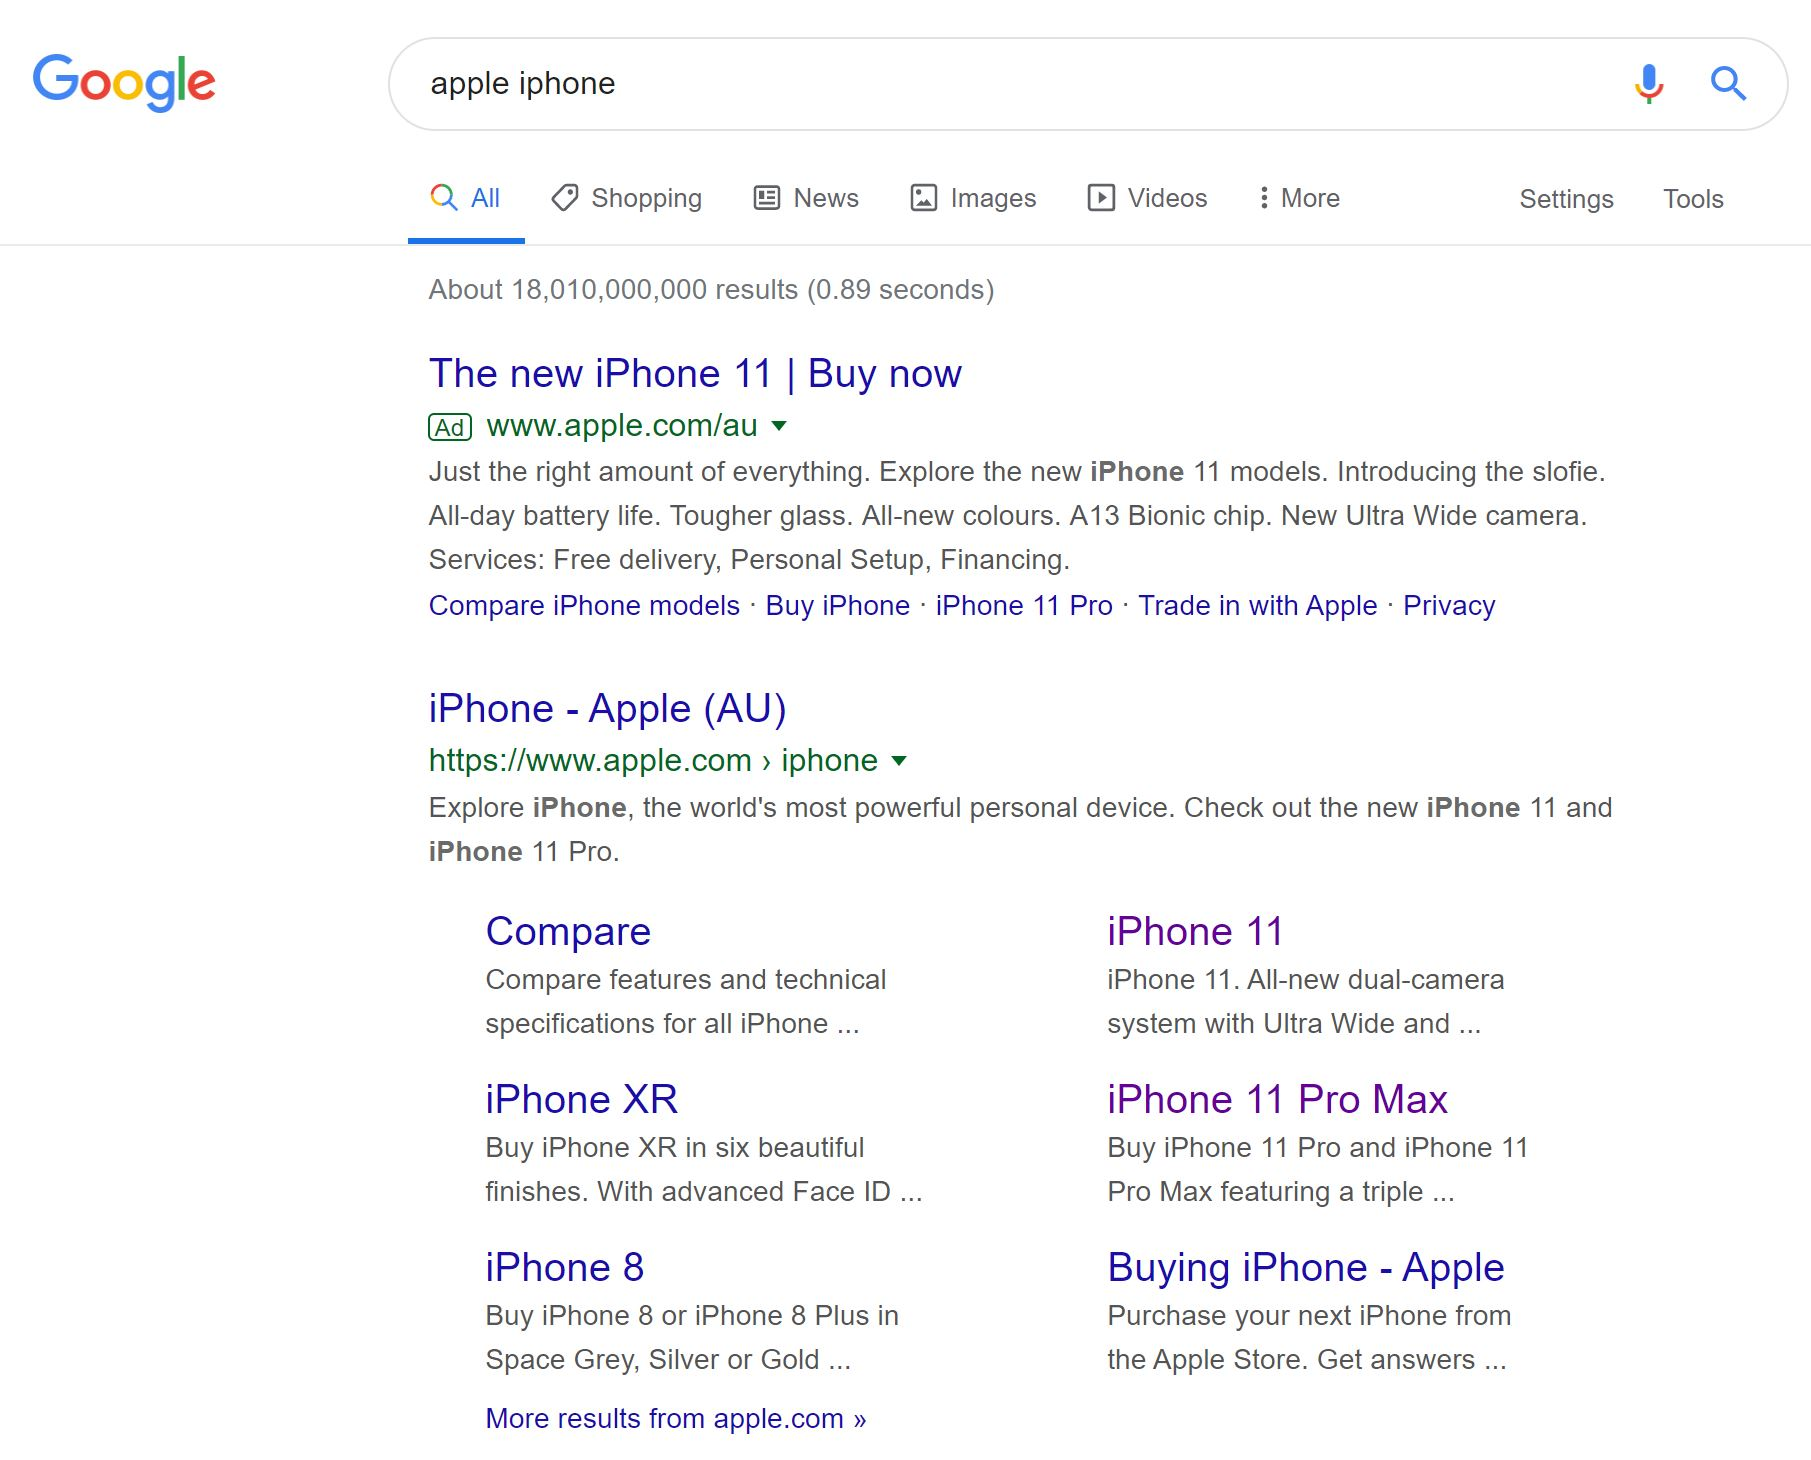 Apple iphone Google Search Results